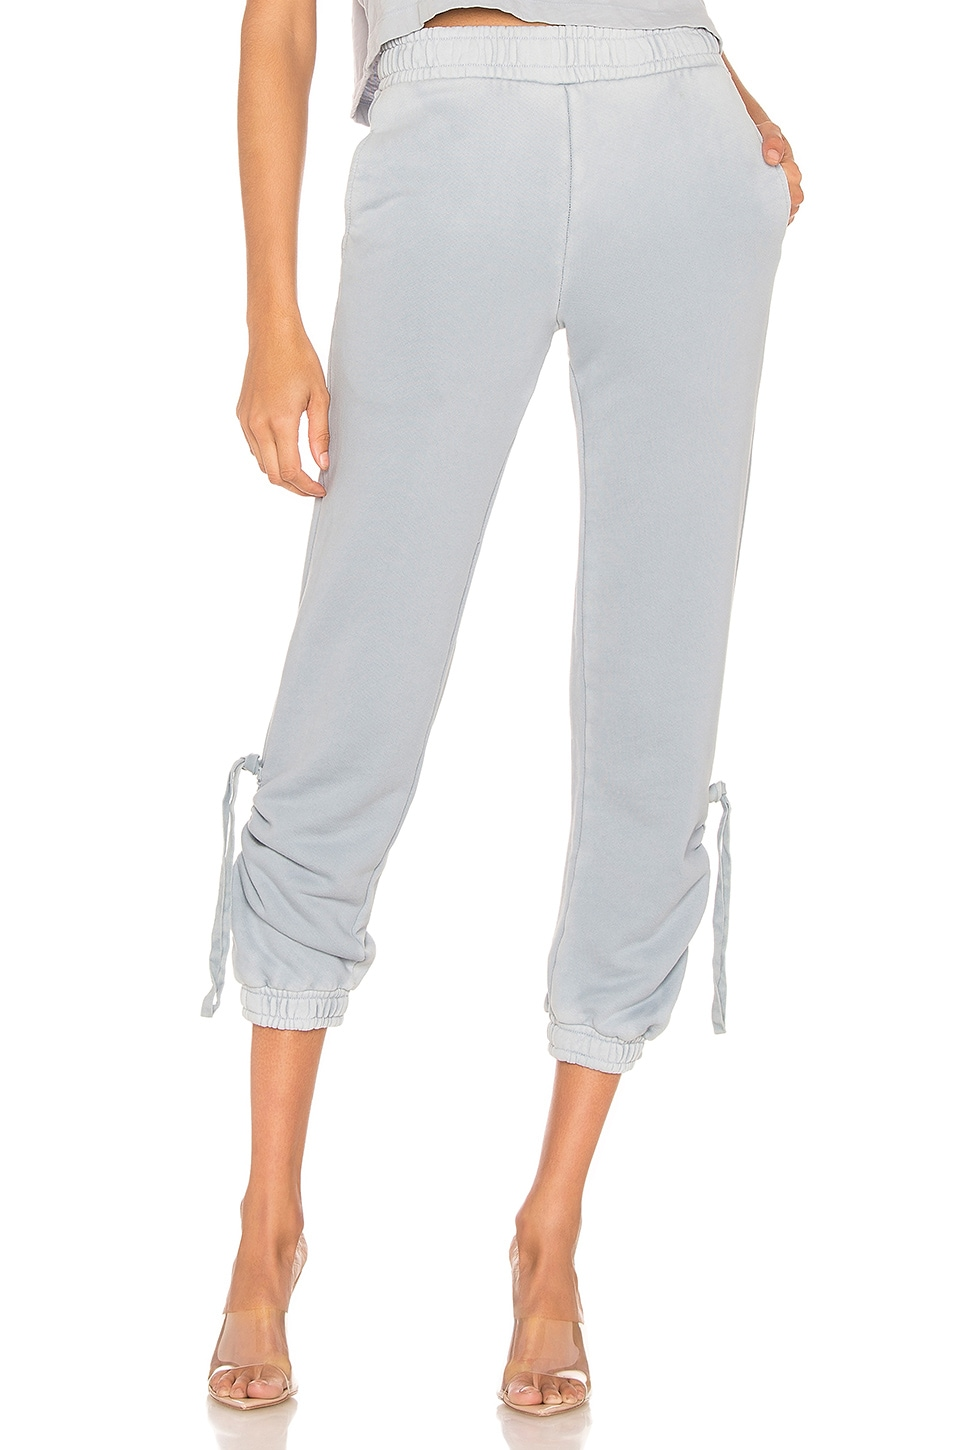 COTTON CITIZEN The Brooklyn Sweatpant in Vintage Crystalline